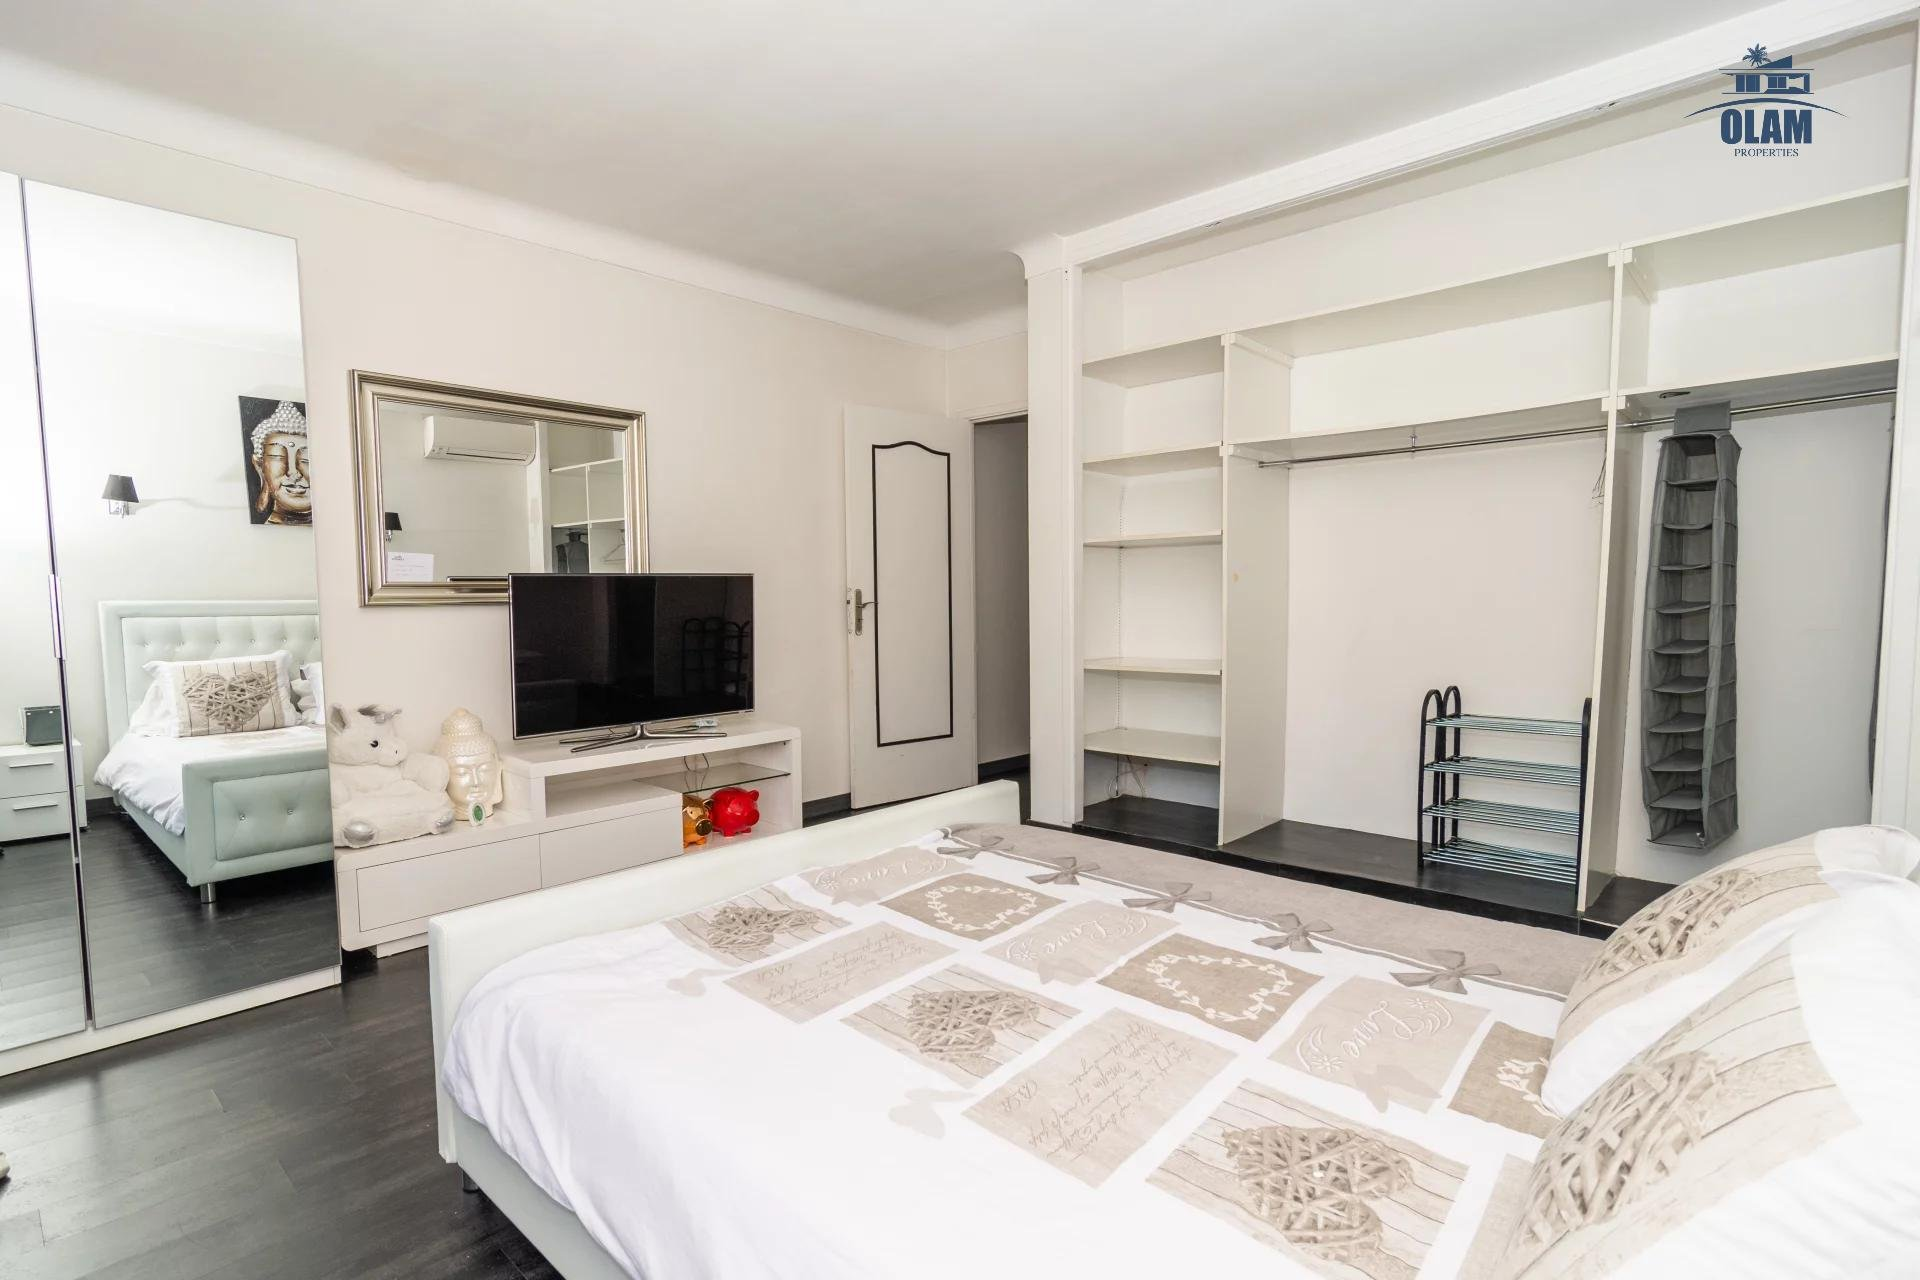 Superb 5 room house with pool and spacious exterior mougins - bedroom and dressing